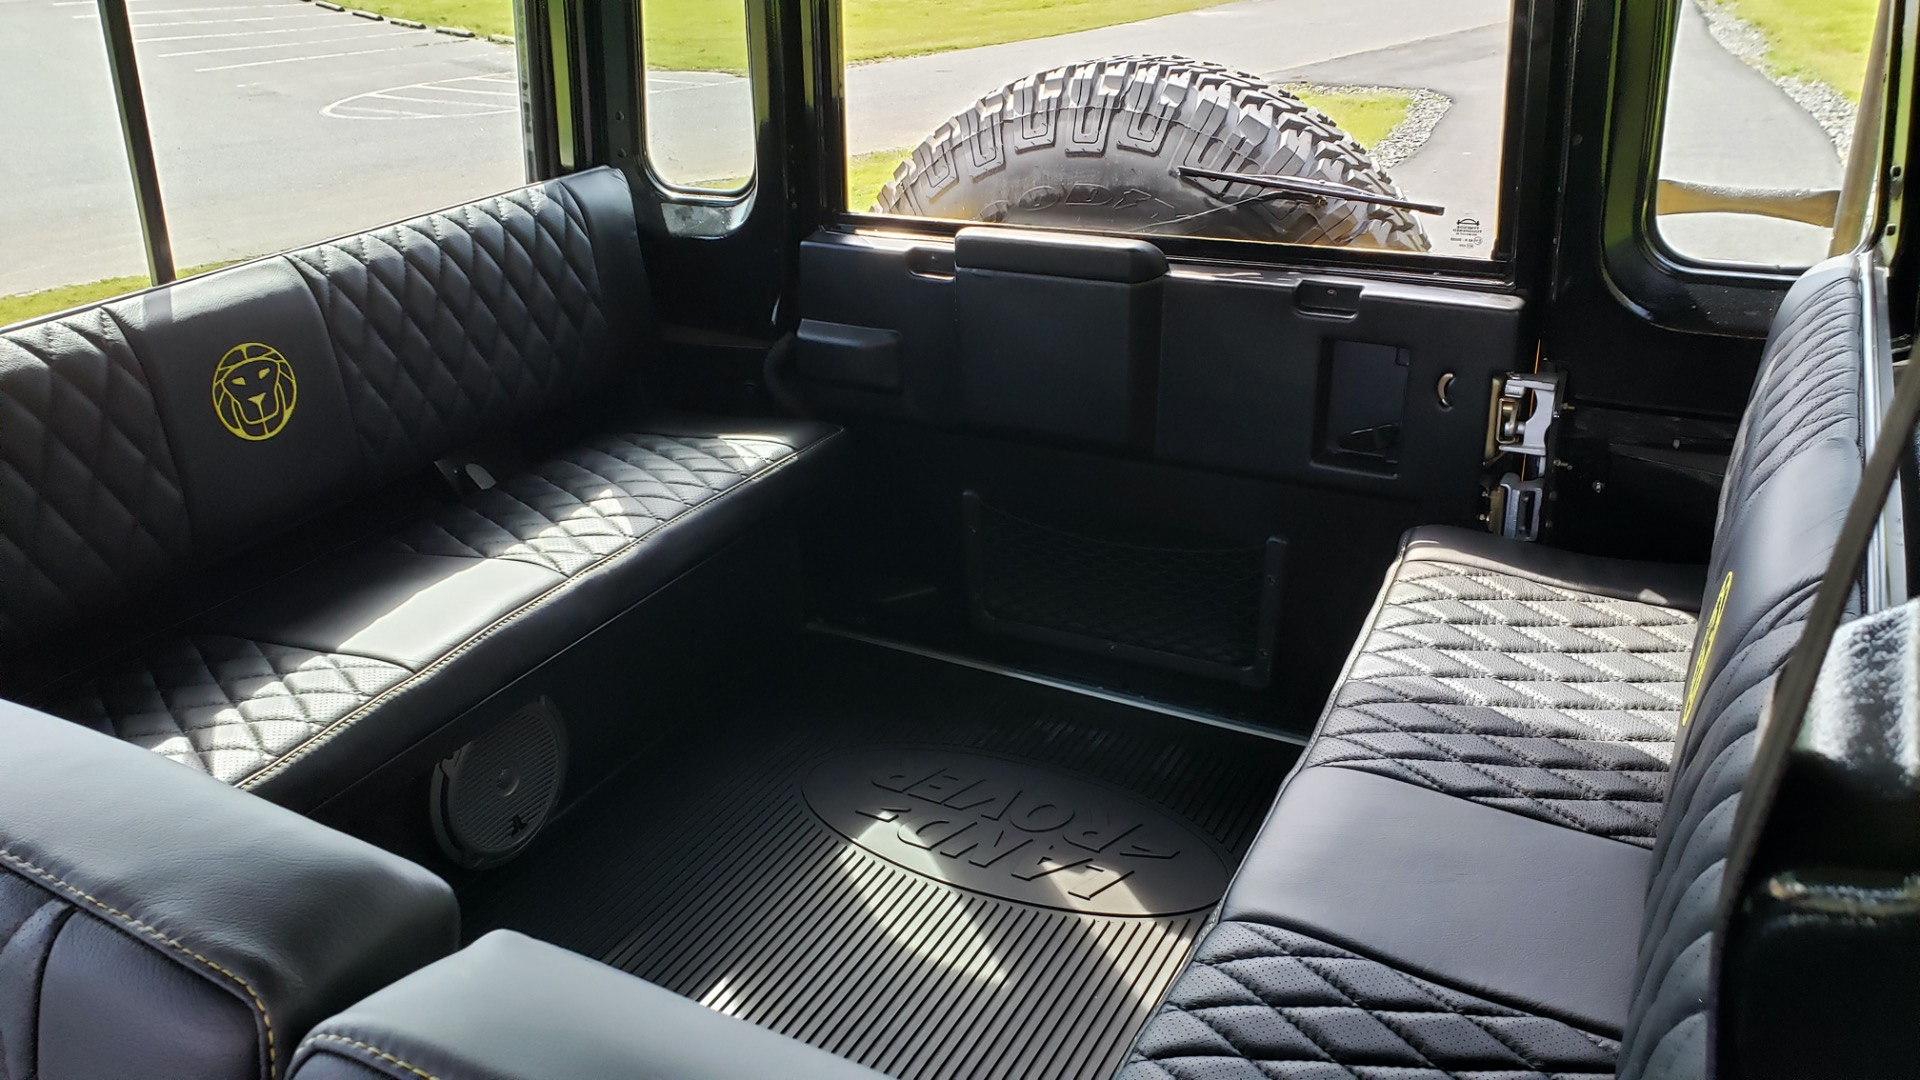 Used 1989 Land Rover Defender 110 4x4 Custom / Fully Restored / Fuel Injected V8 / 5-Spd Man for sale $60,000 at Formula Imports in Charlotte NC 28227 39